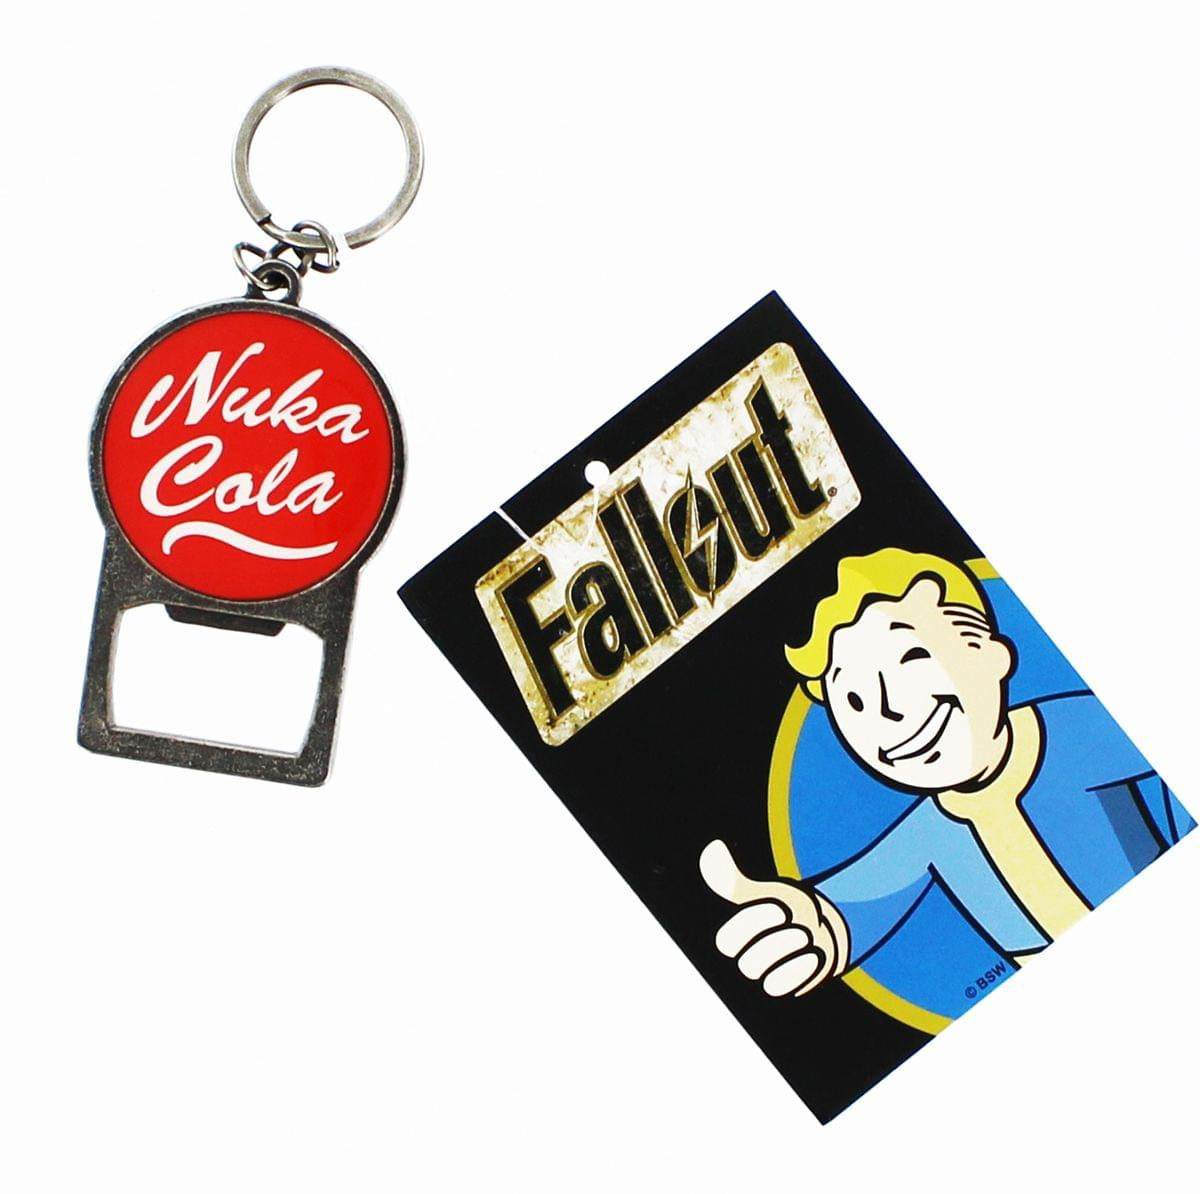 fallout nuka cola metal keychain bottle opener ebay. Black Bedroom Furniture Sets. Home Design Ideas